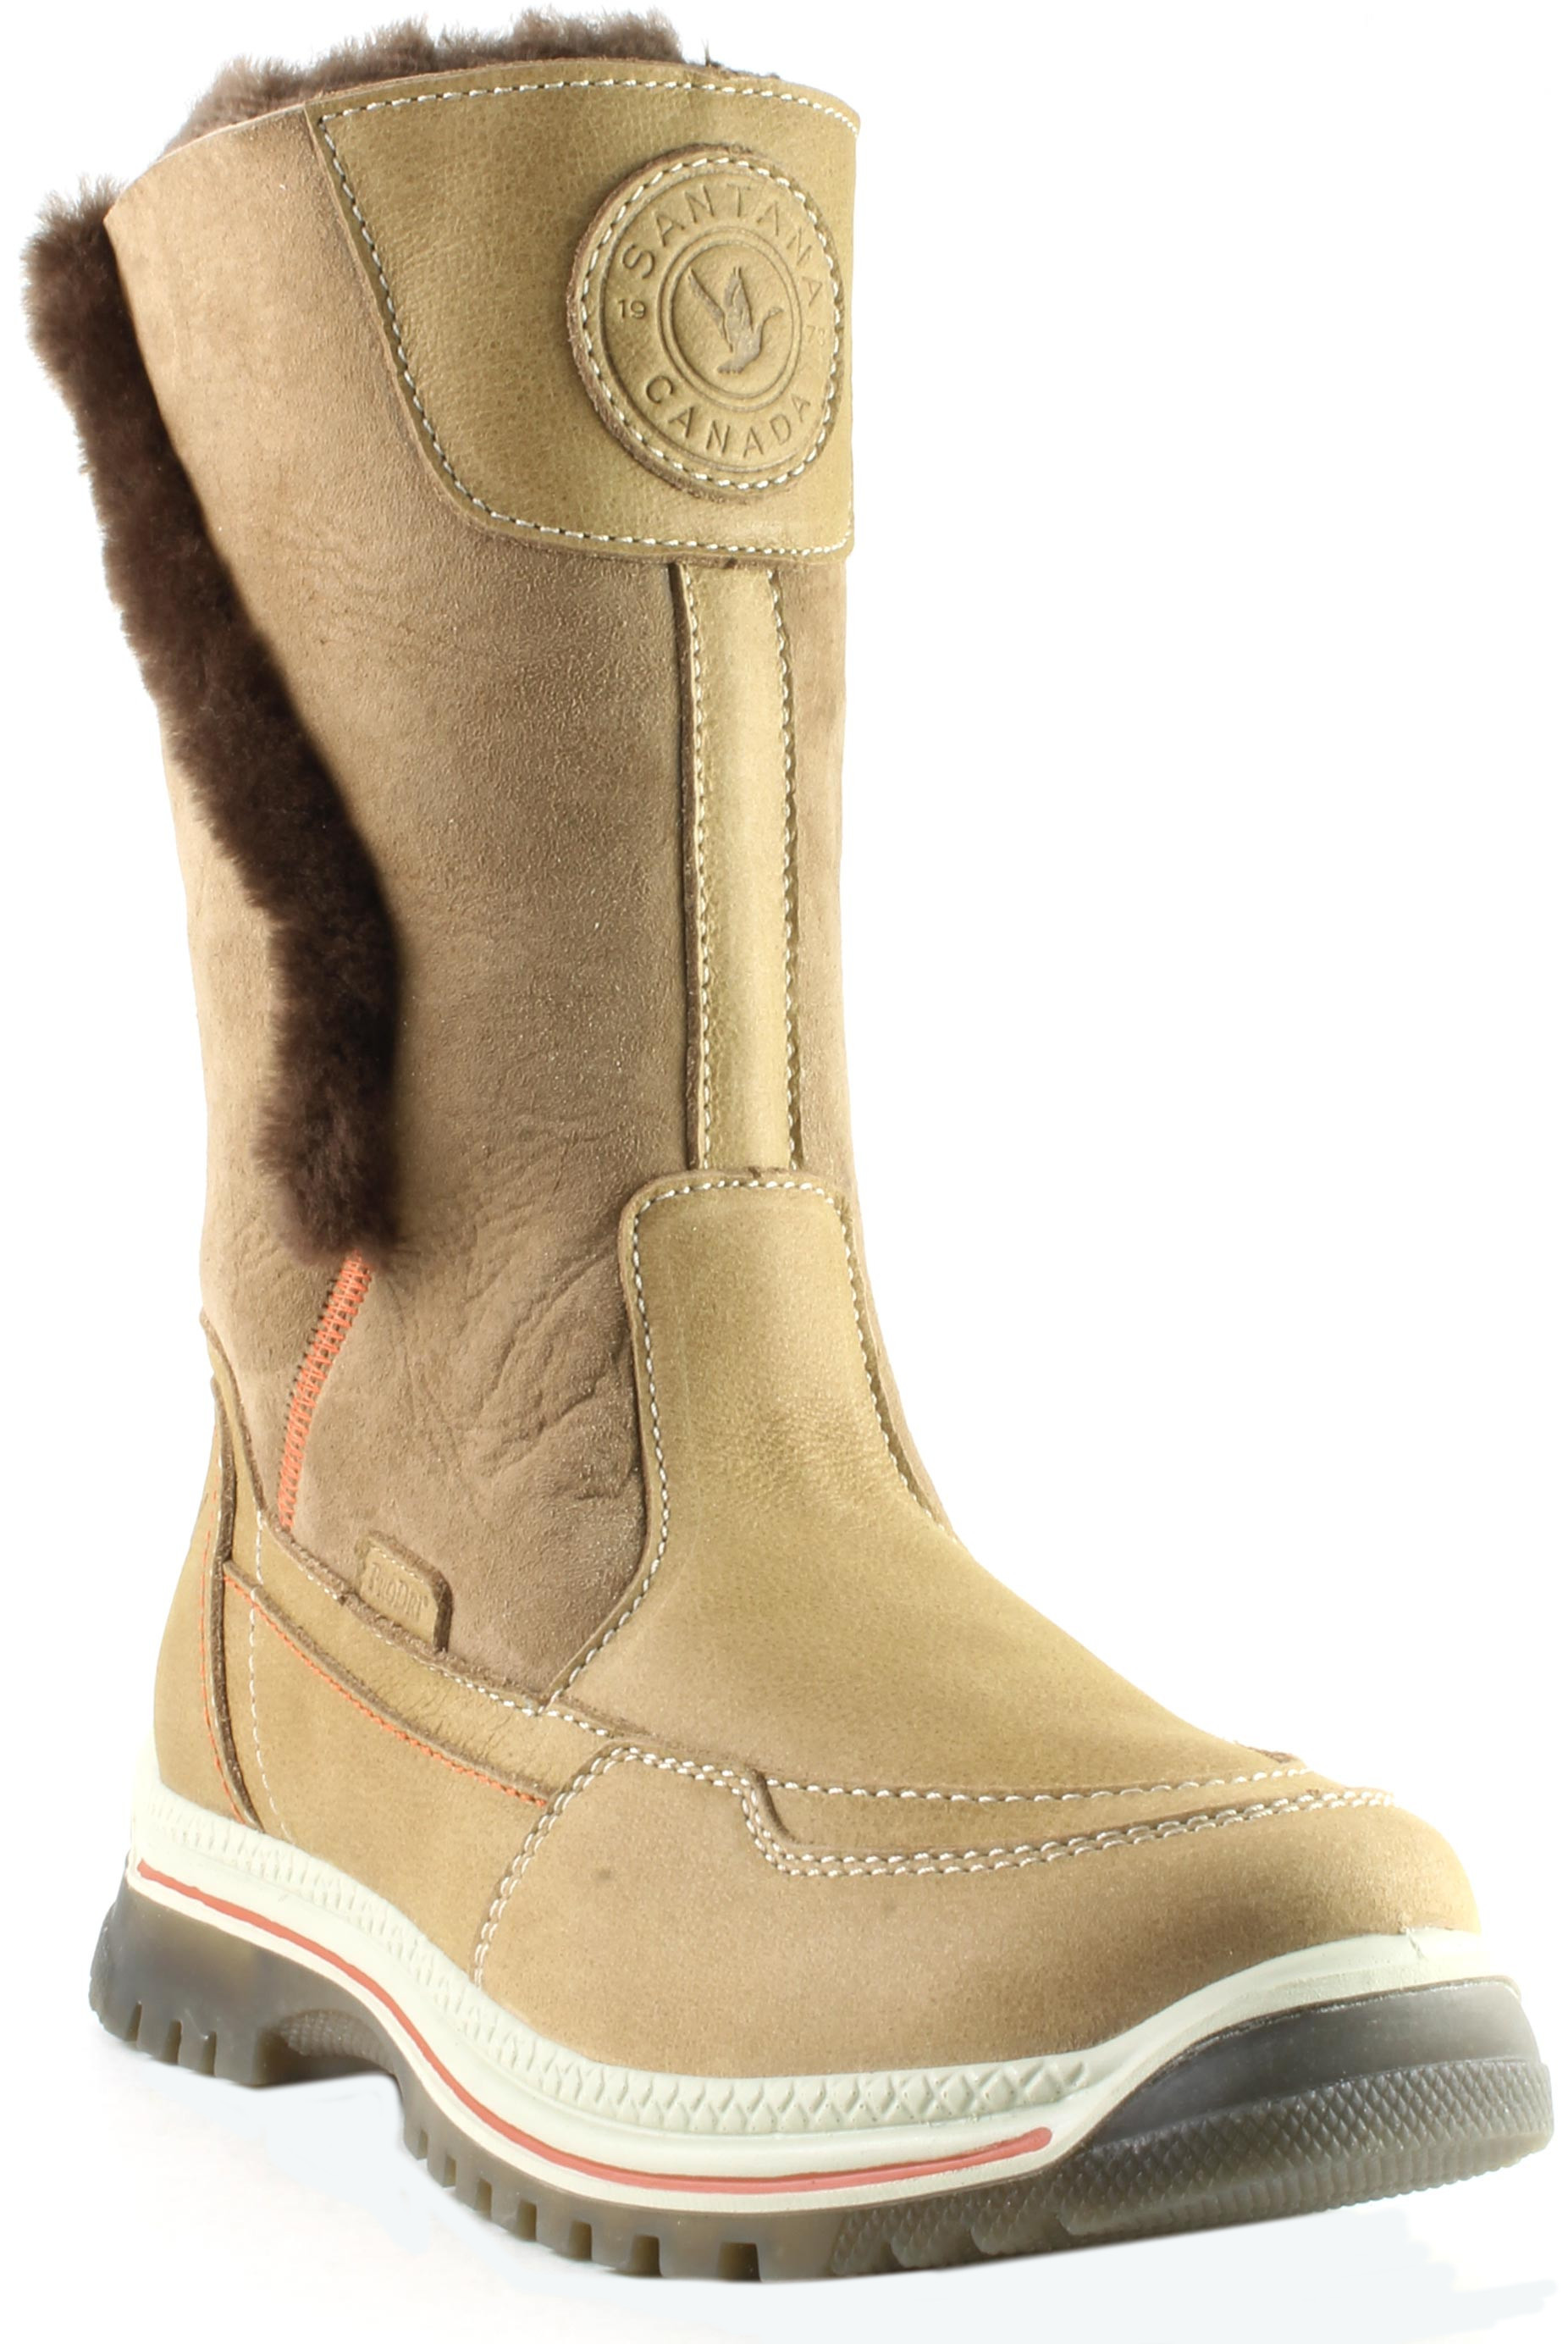 00f4722d531f Santana Canada Seraphine Winter Boot - Women s 185-0000179-6